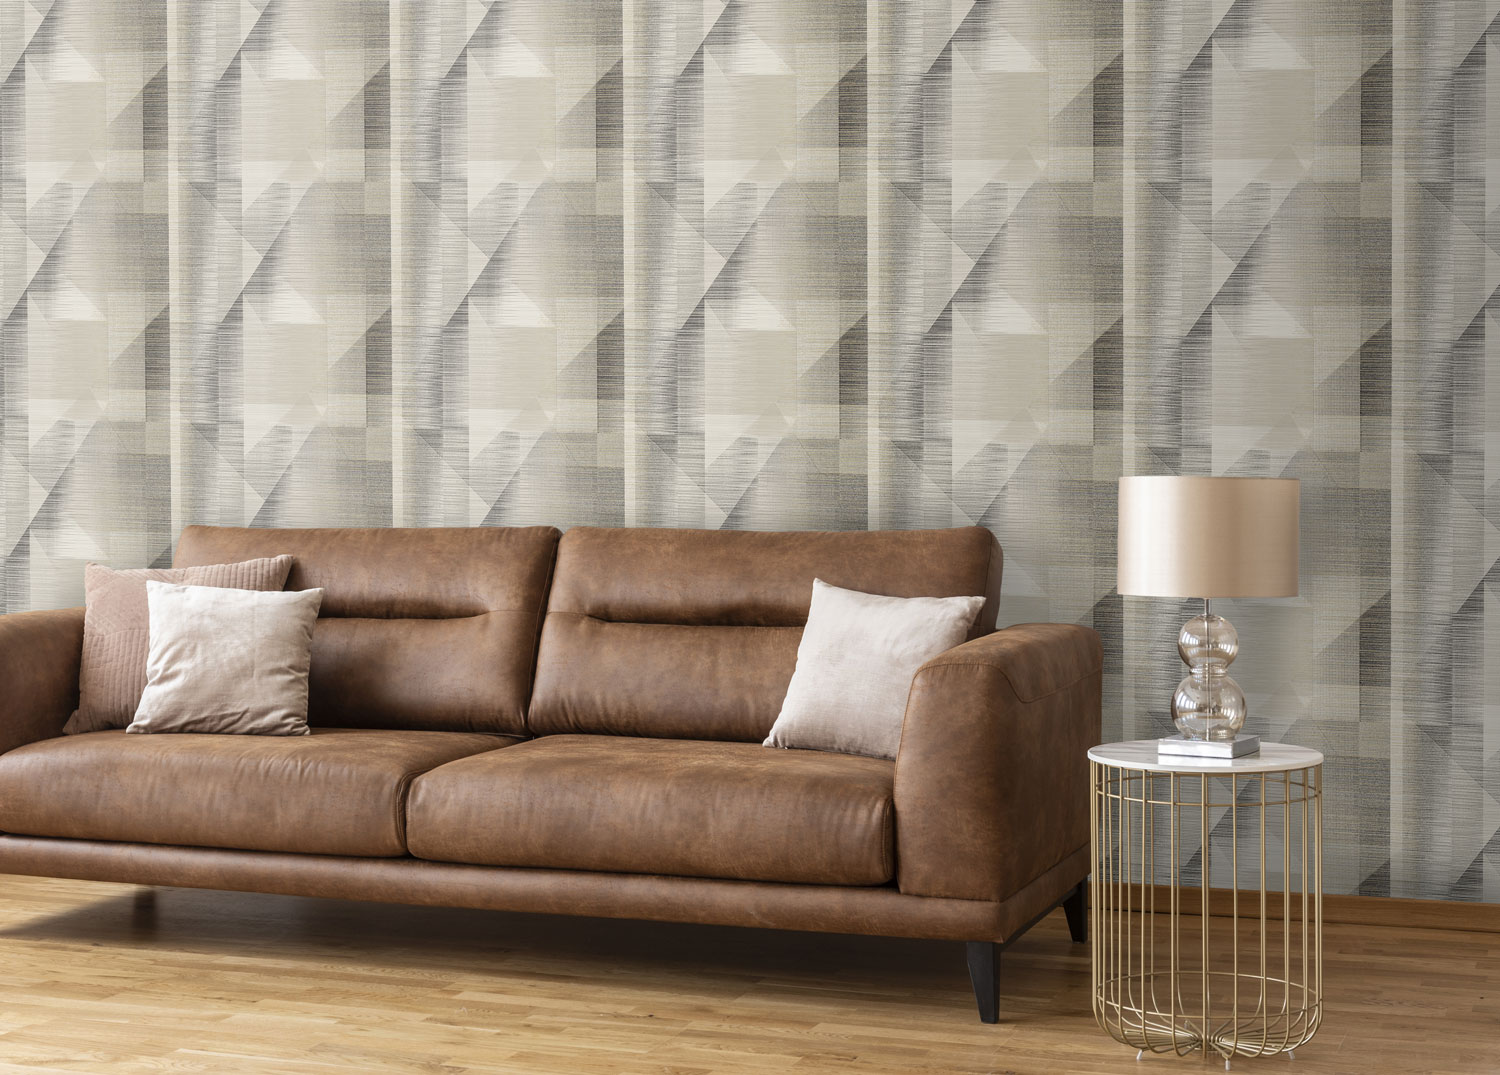 Butia black and white in a living room with tan sofa